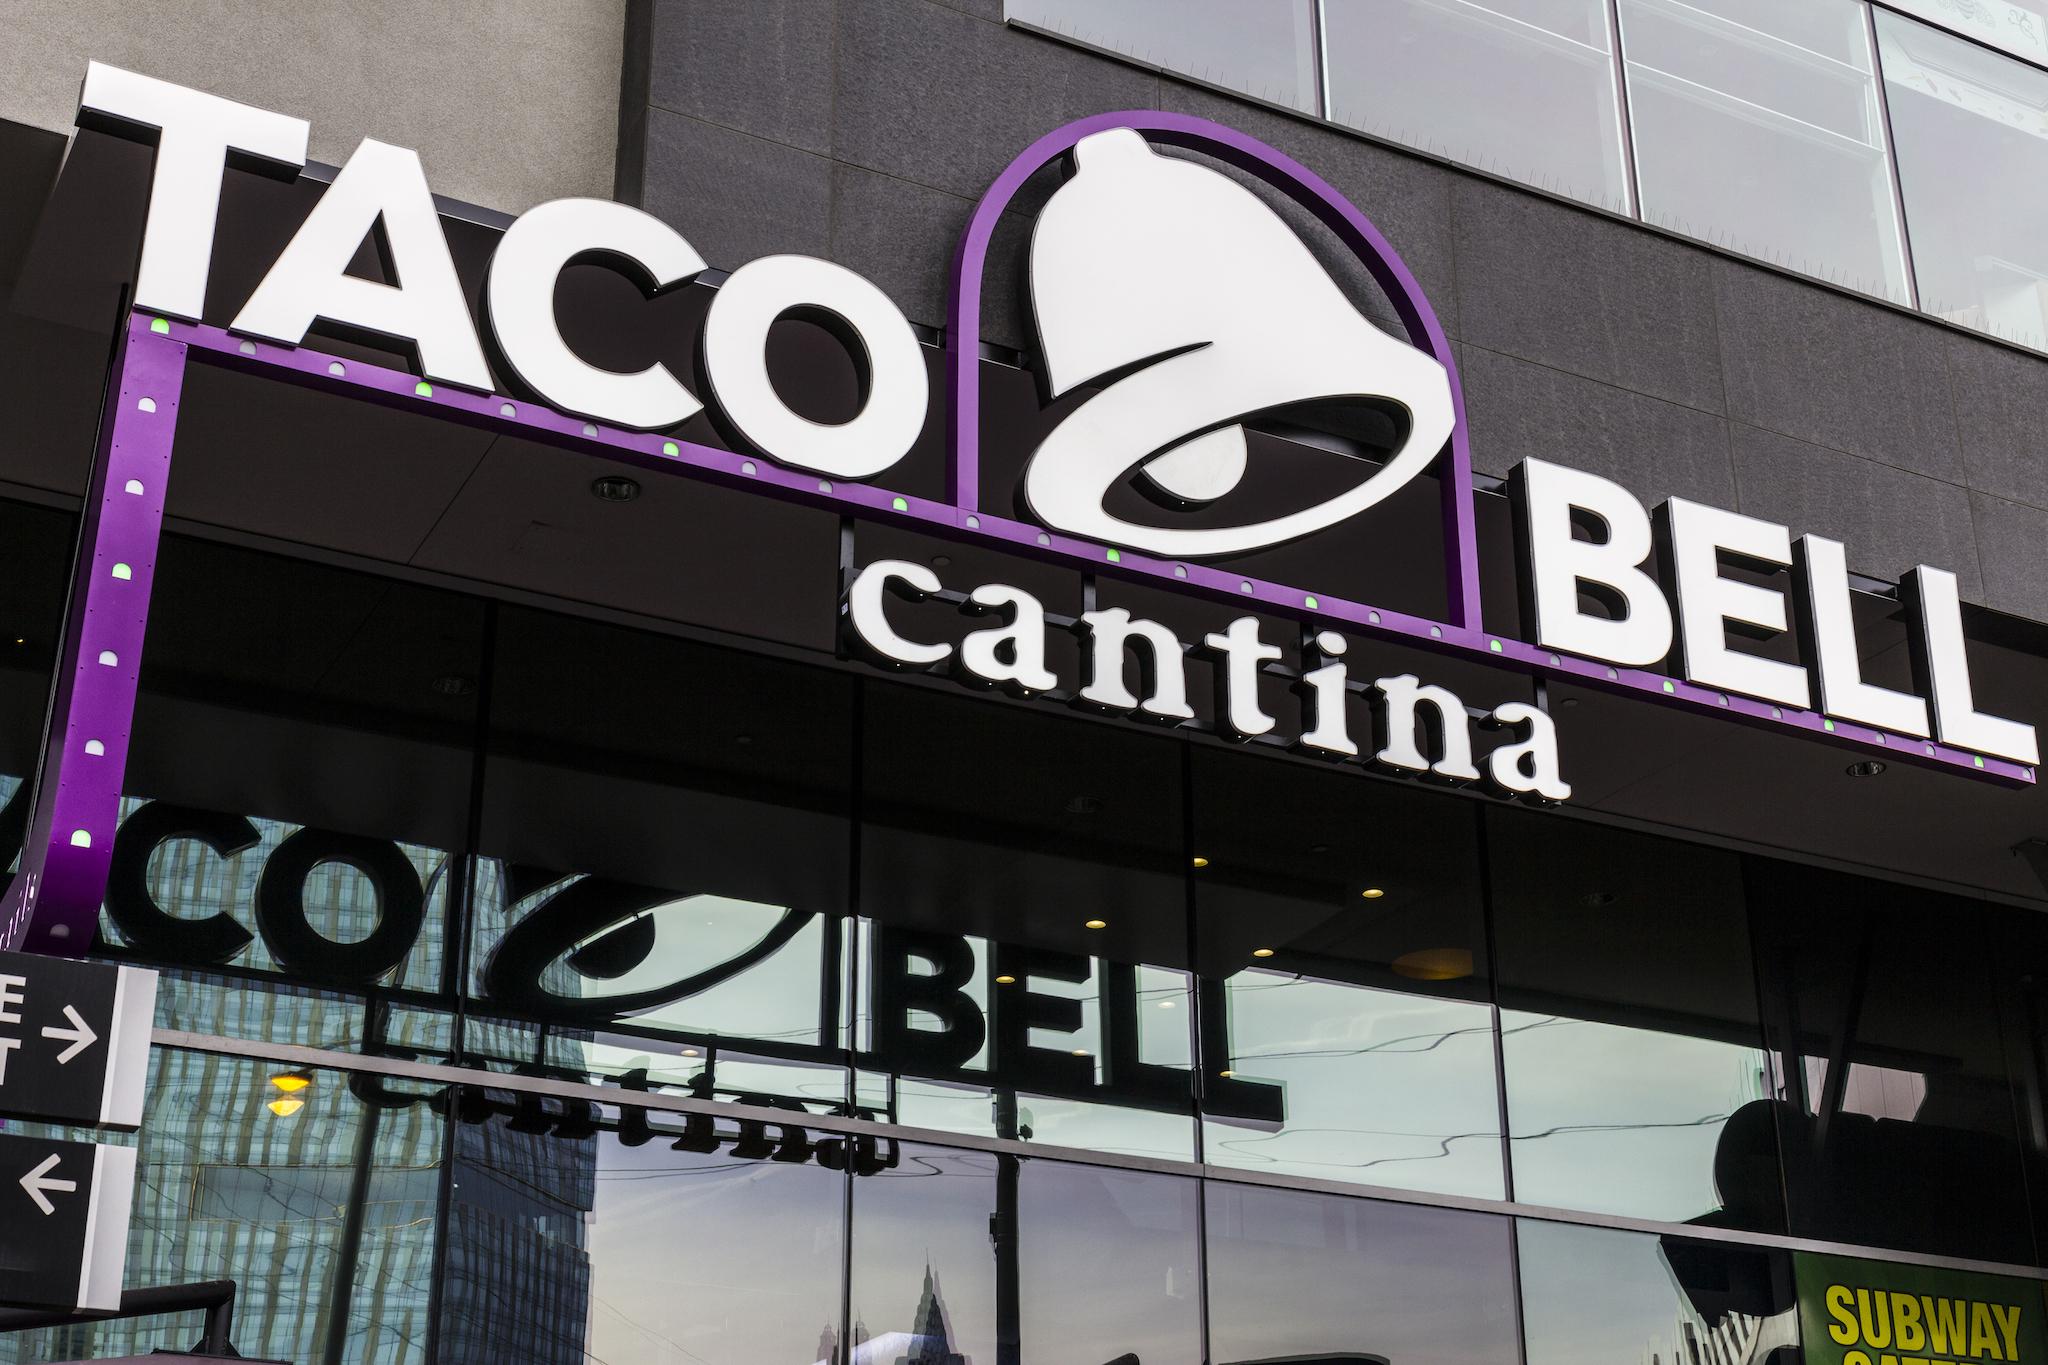 Boston's first Taco Bell Cantina has opened on BU's campus